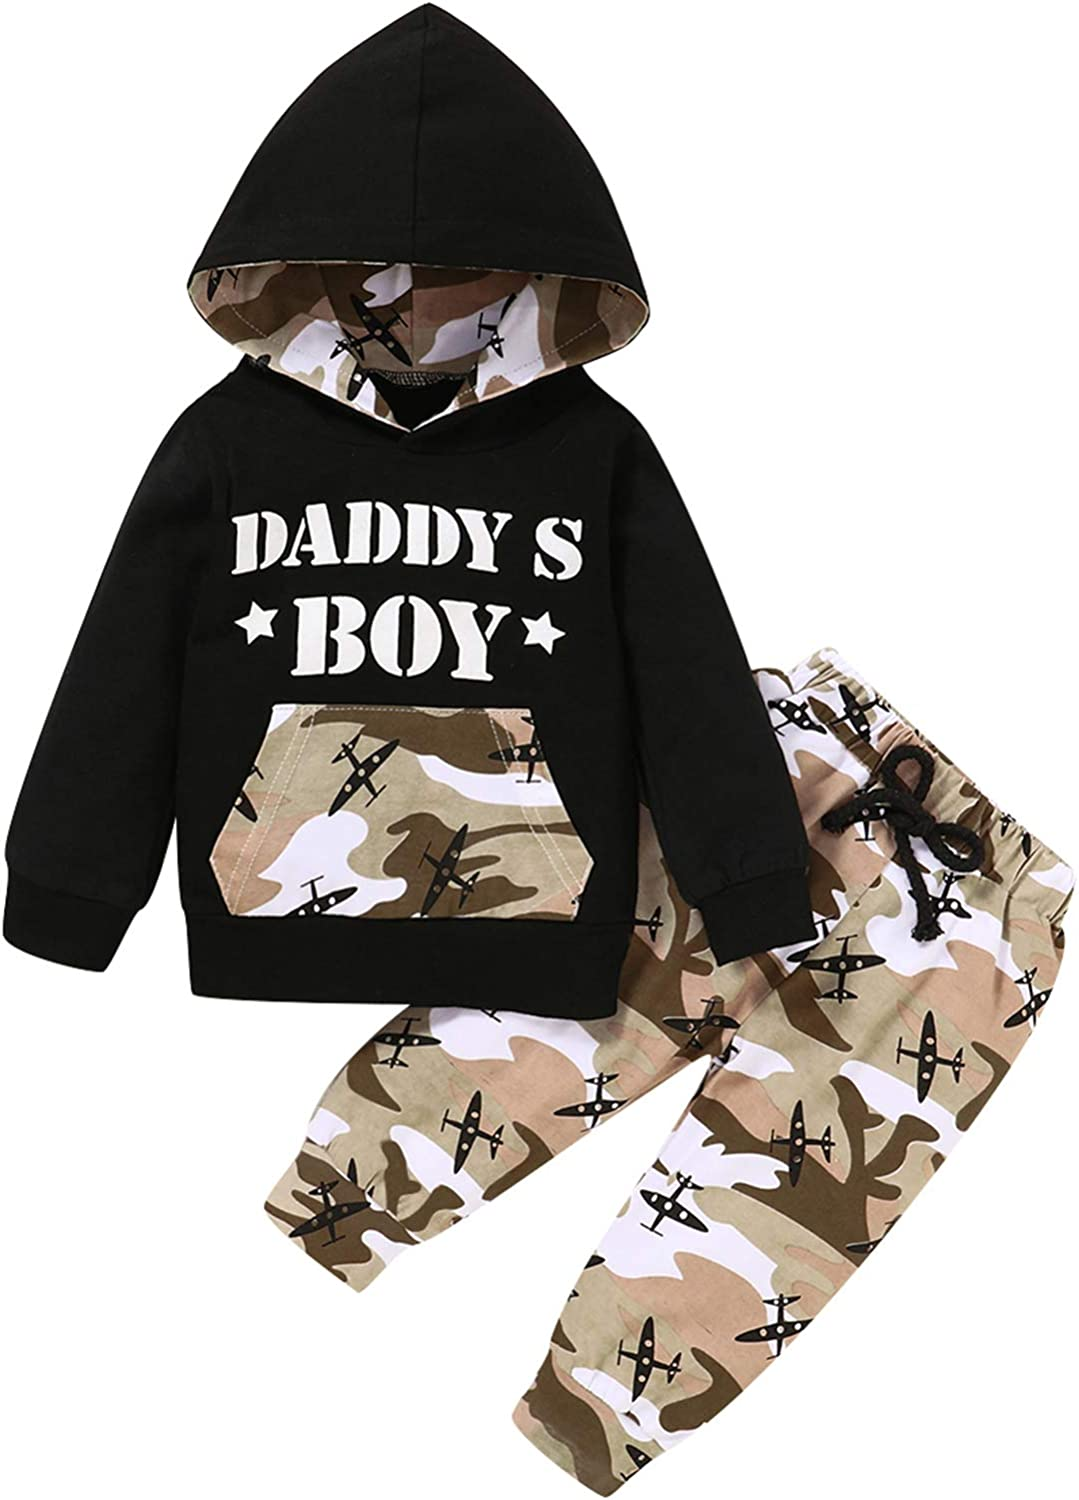 Shalofer Baby Boy Camouflage Hoodies Toddler Funny Letter Print Outfits